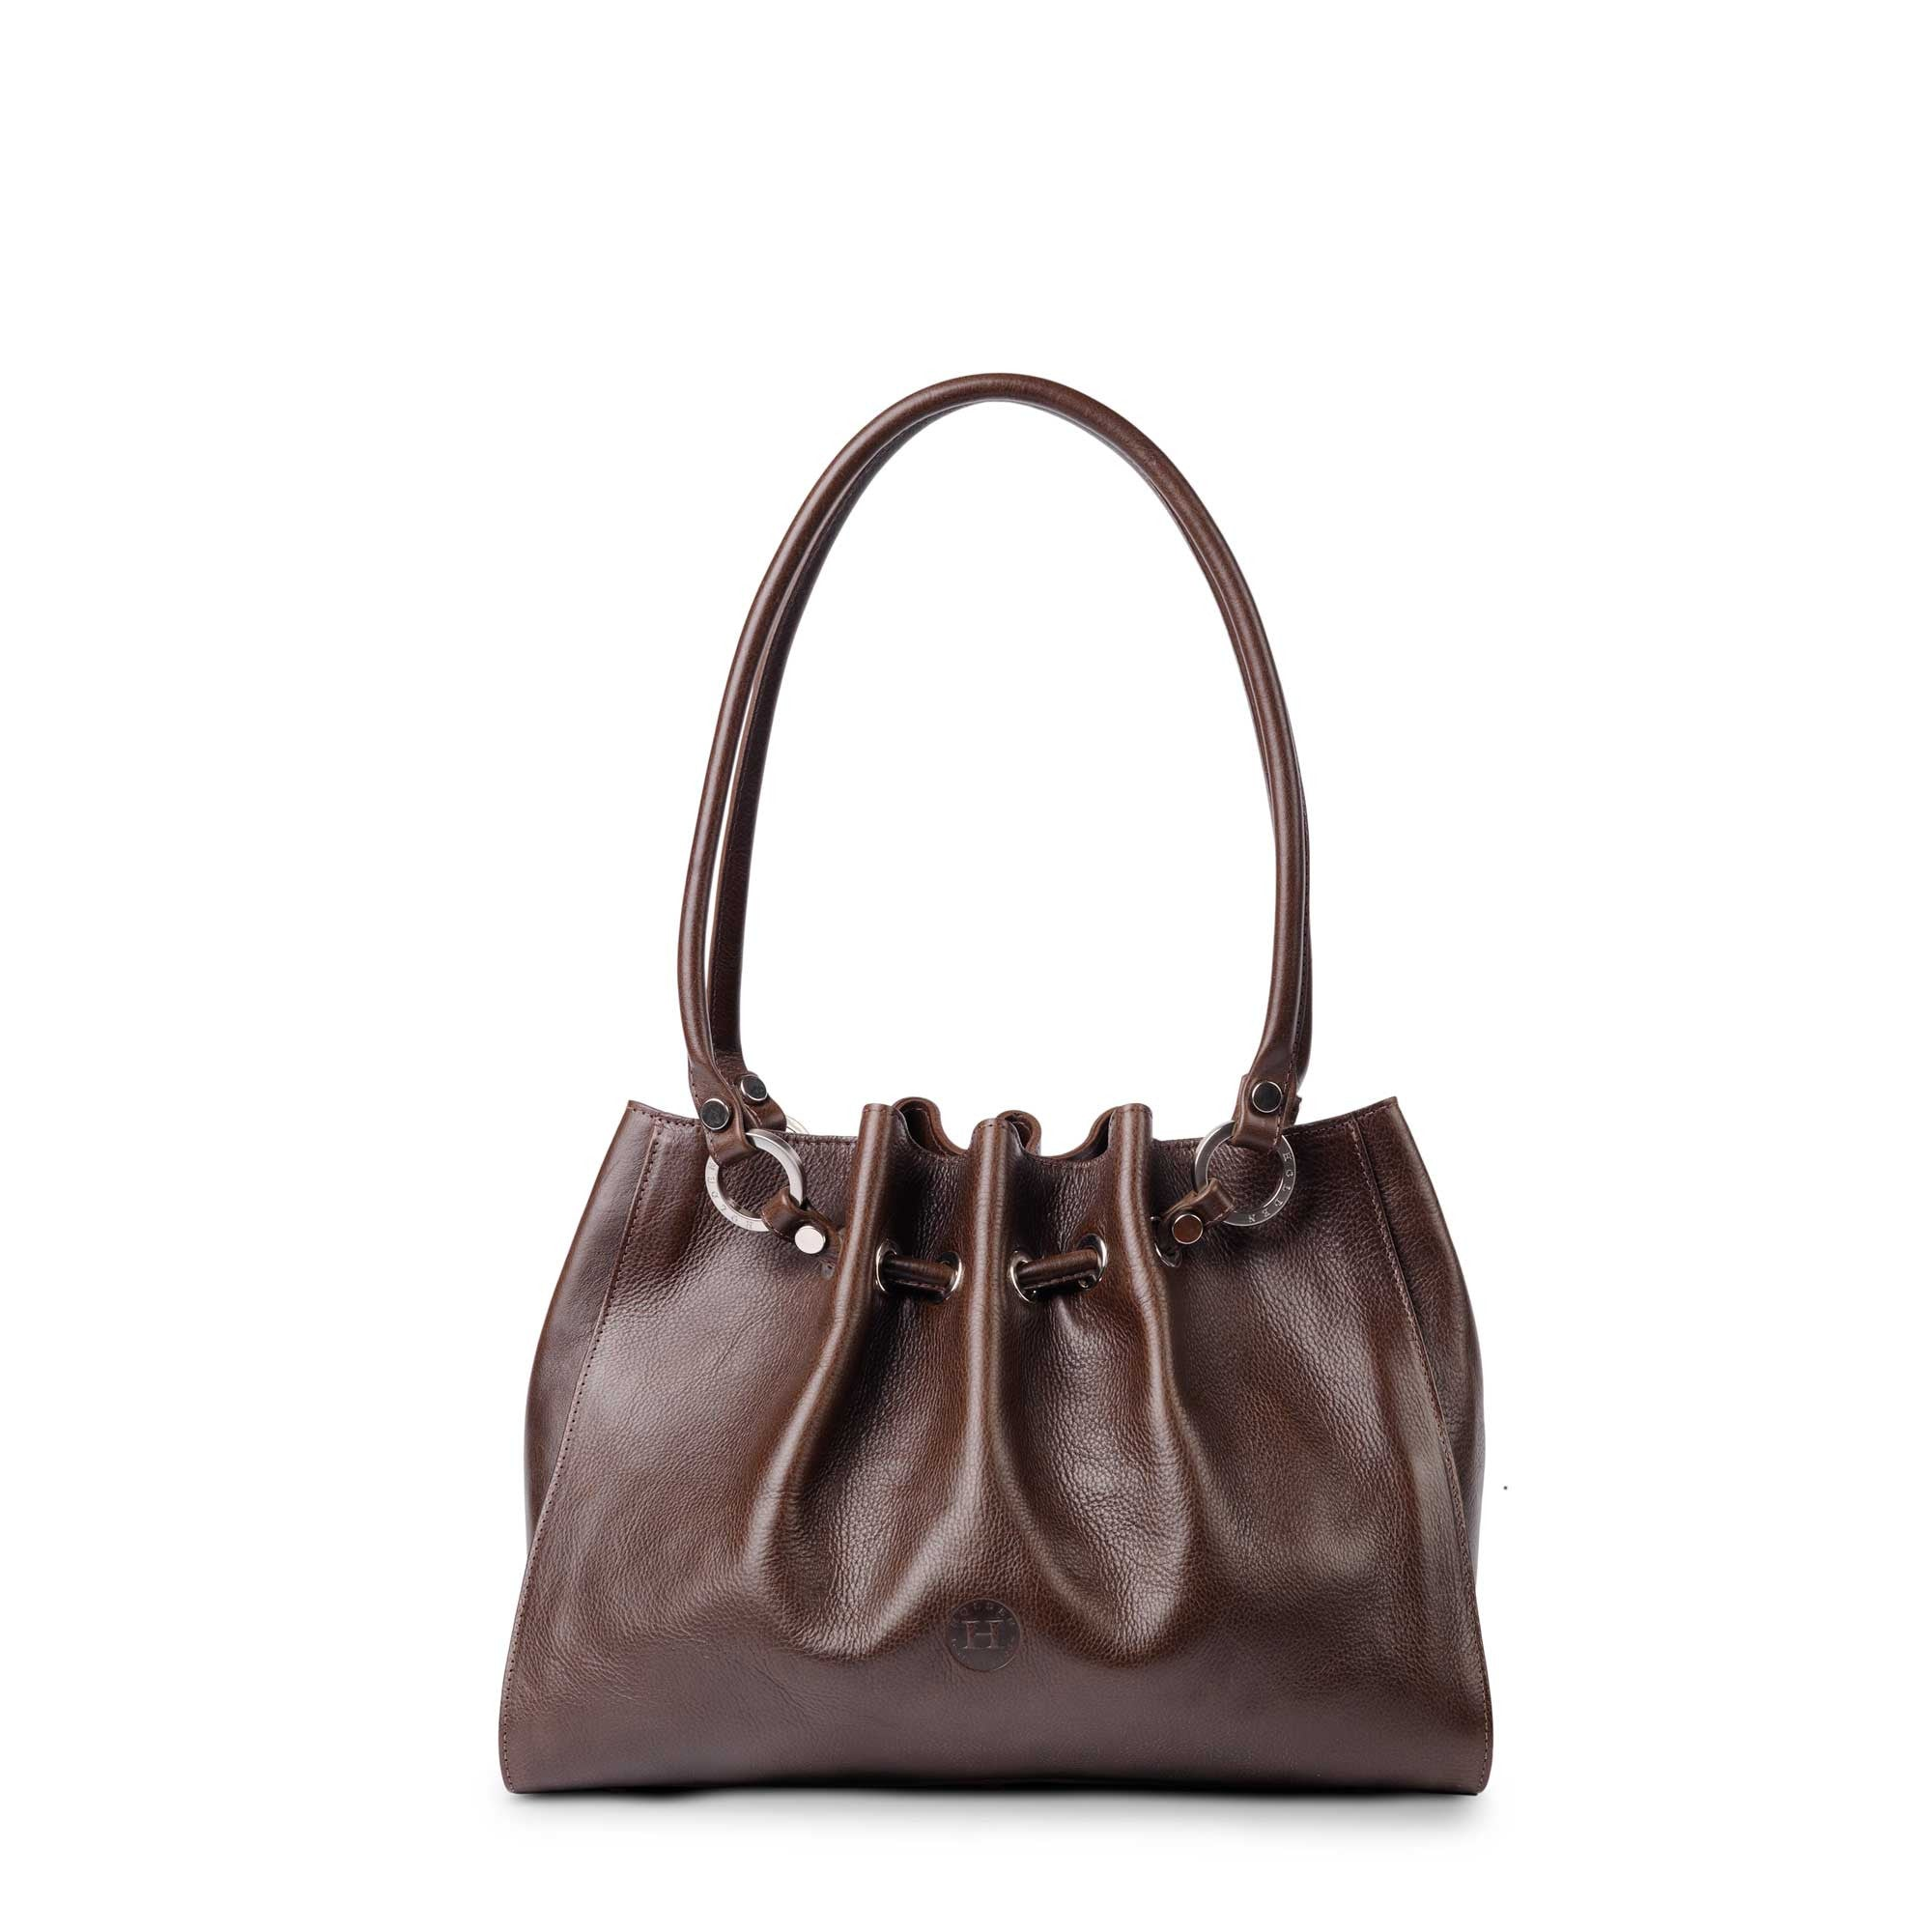 Siobhan Medium Leather Tote Brown - Holden Leathergoods, leather bags handmade in Ireland